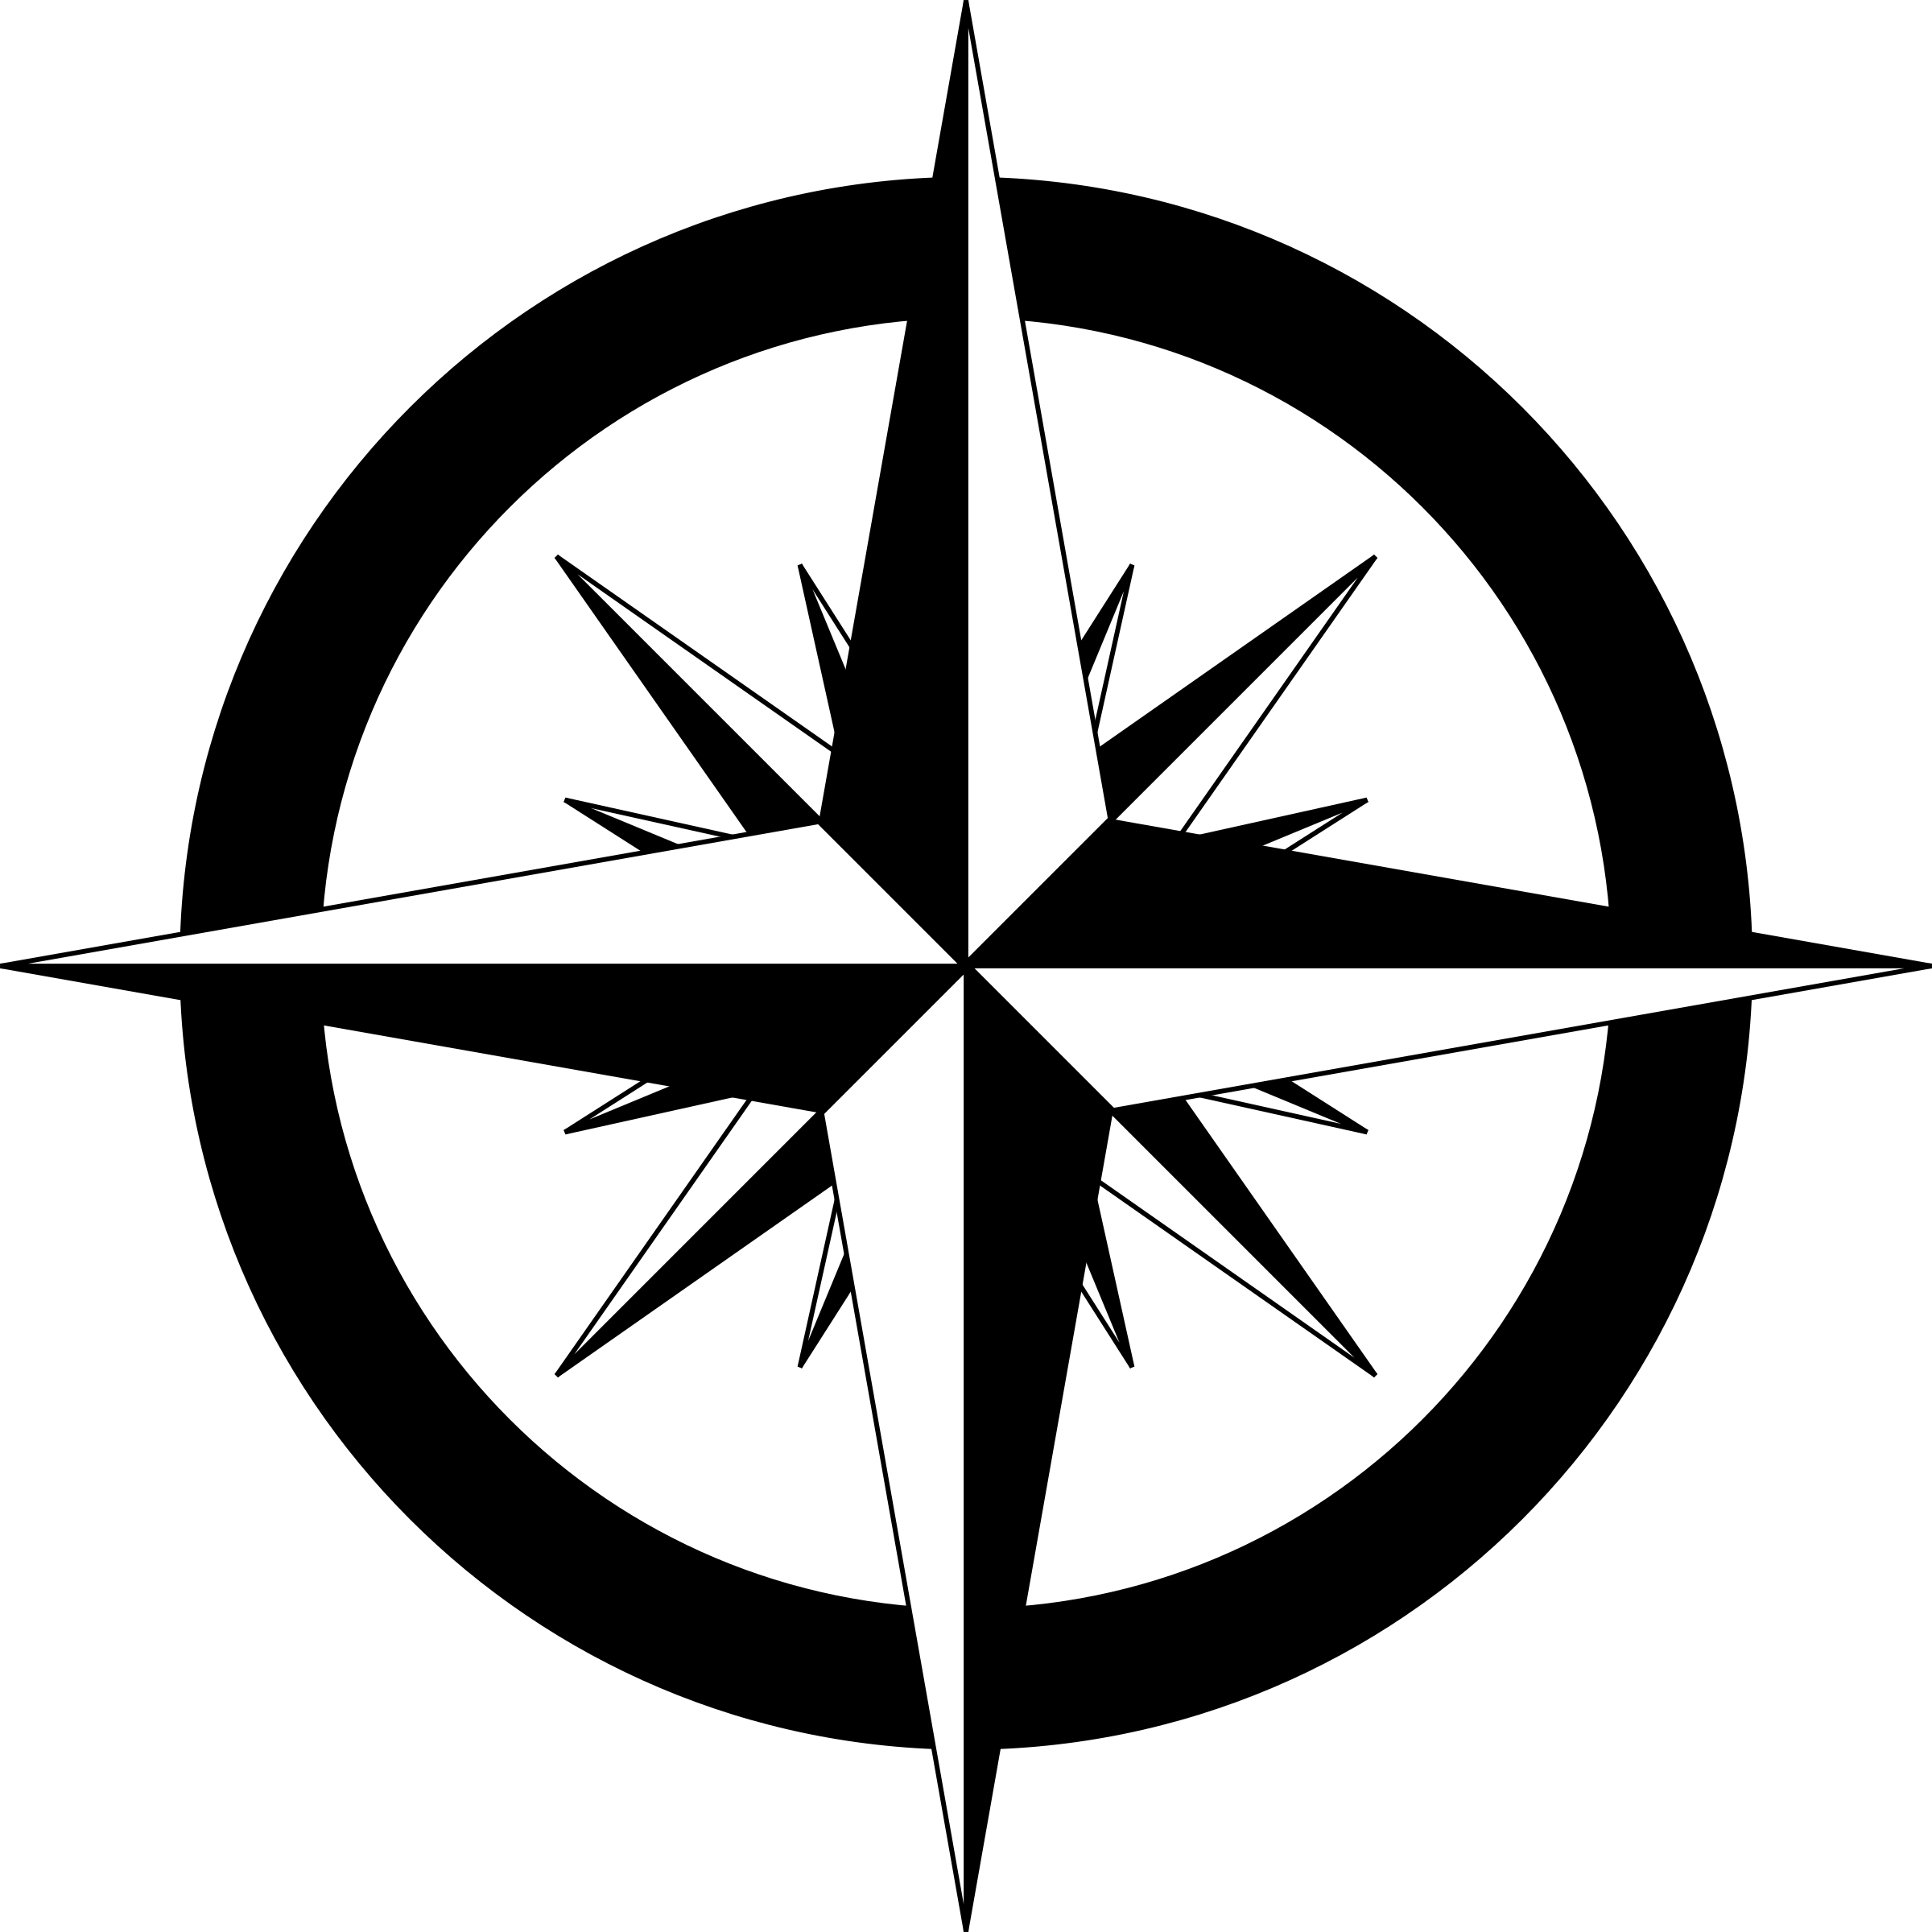 Compass Rose Vector Clipart image.